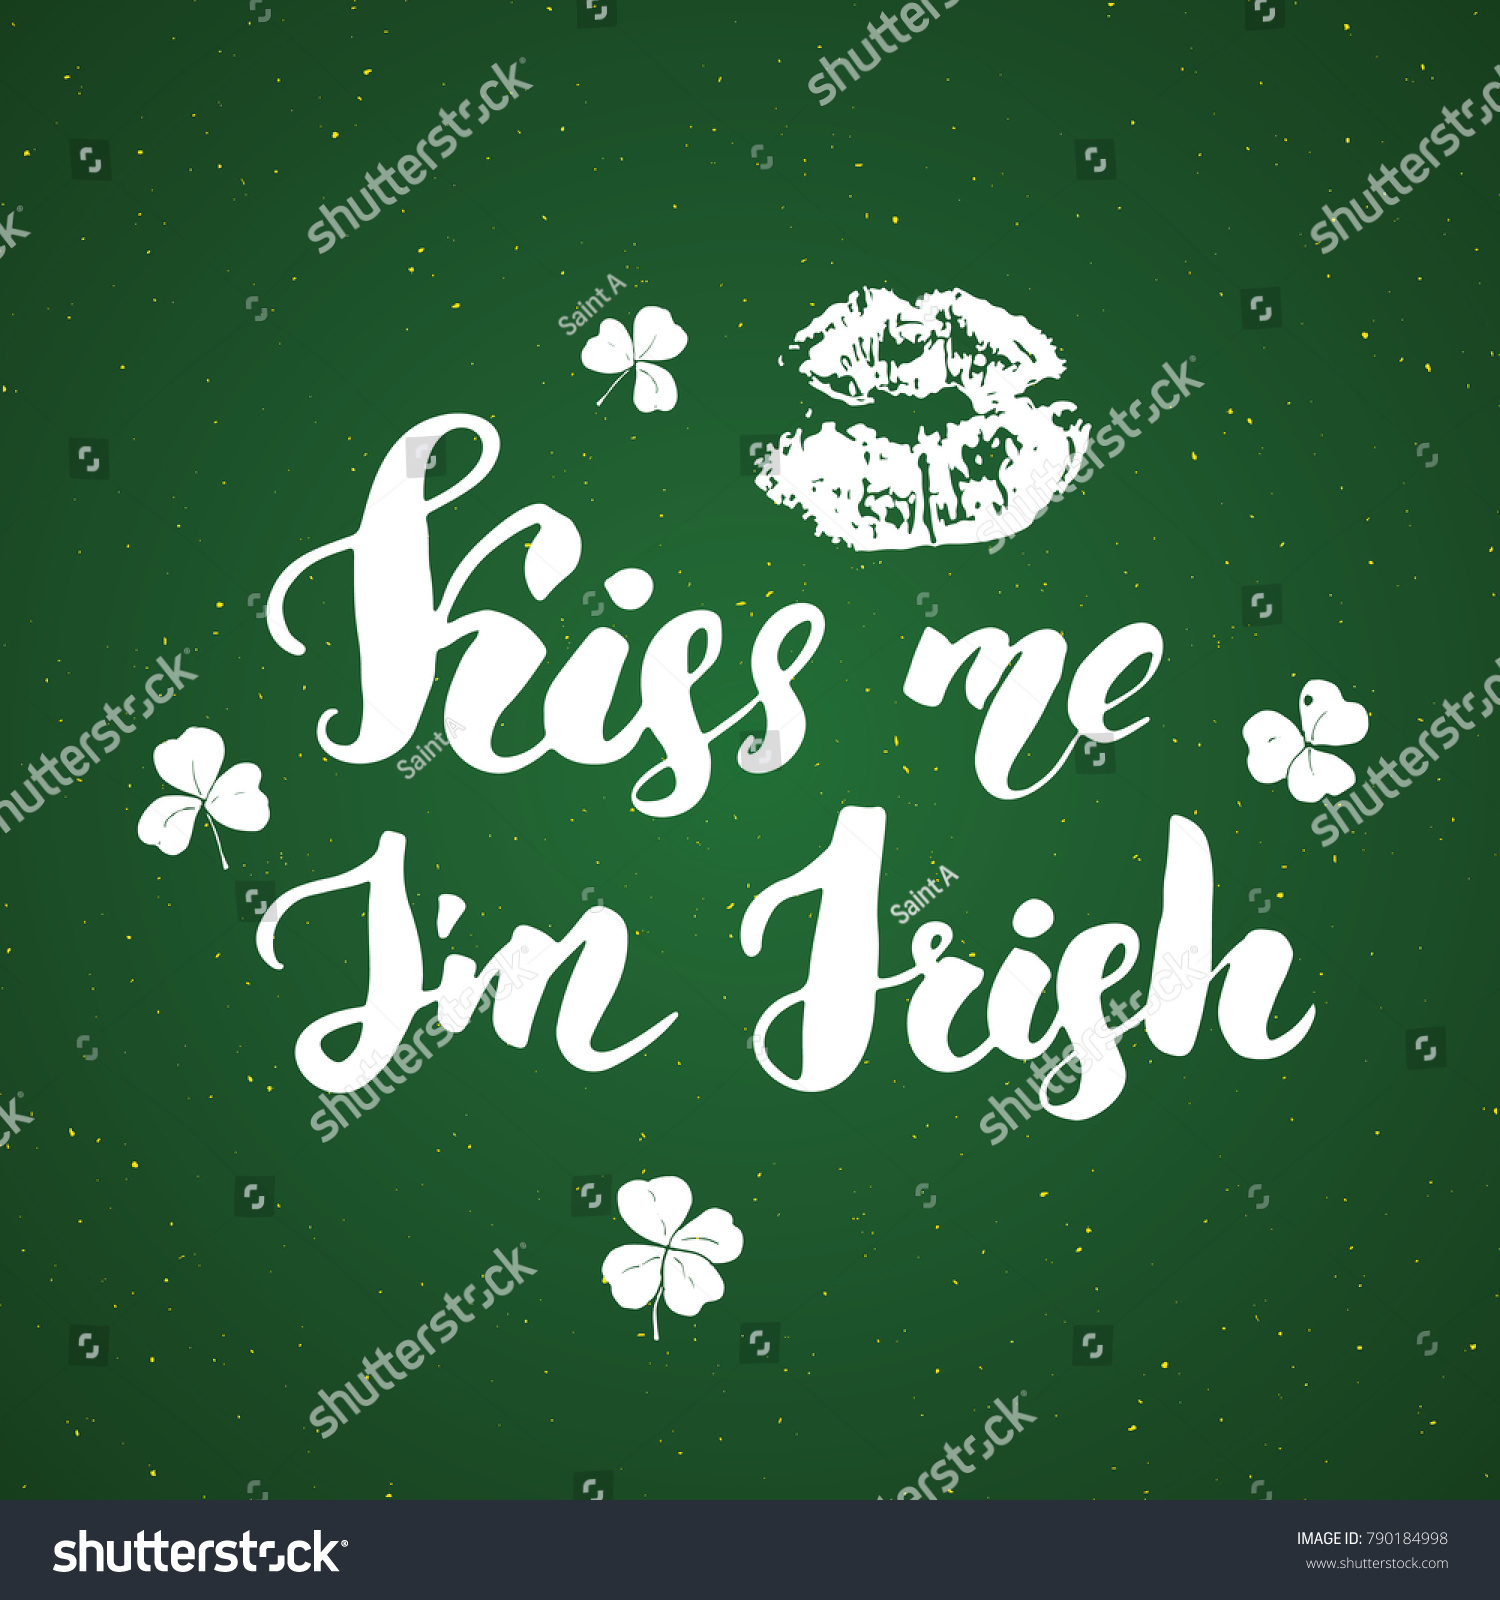 Kiss me irish st patricks day stock illustration 790184998 kiss me im irish st patricks day greeting card hand lettering with kristyandbryce Images